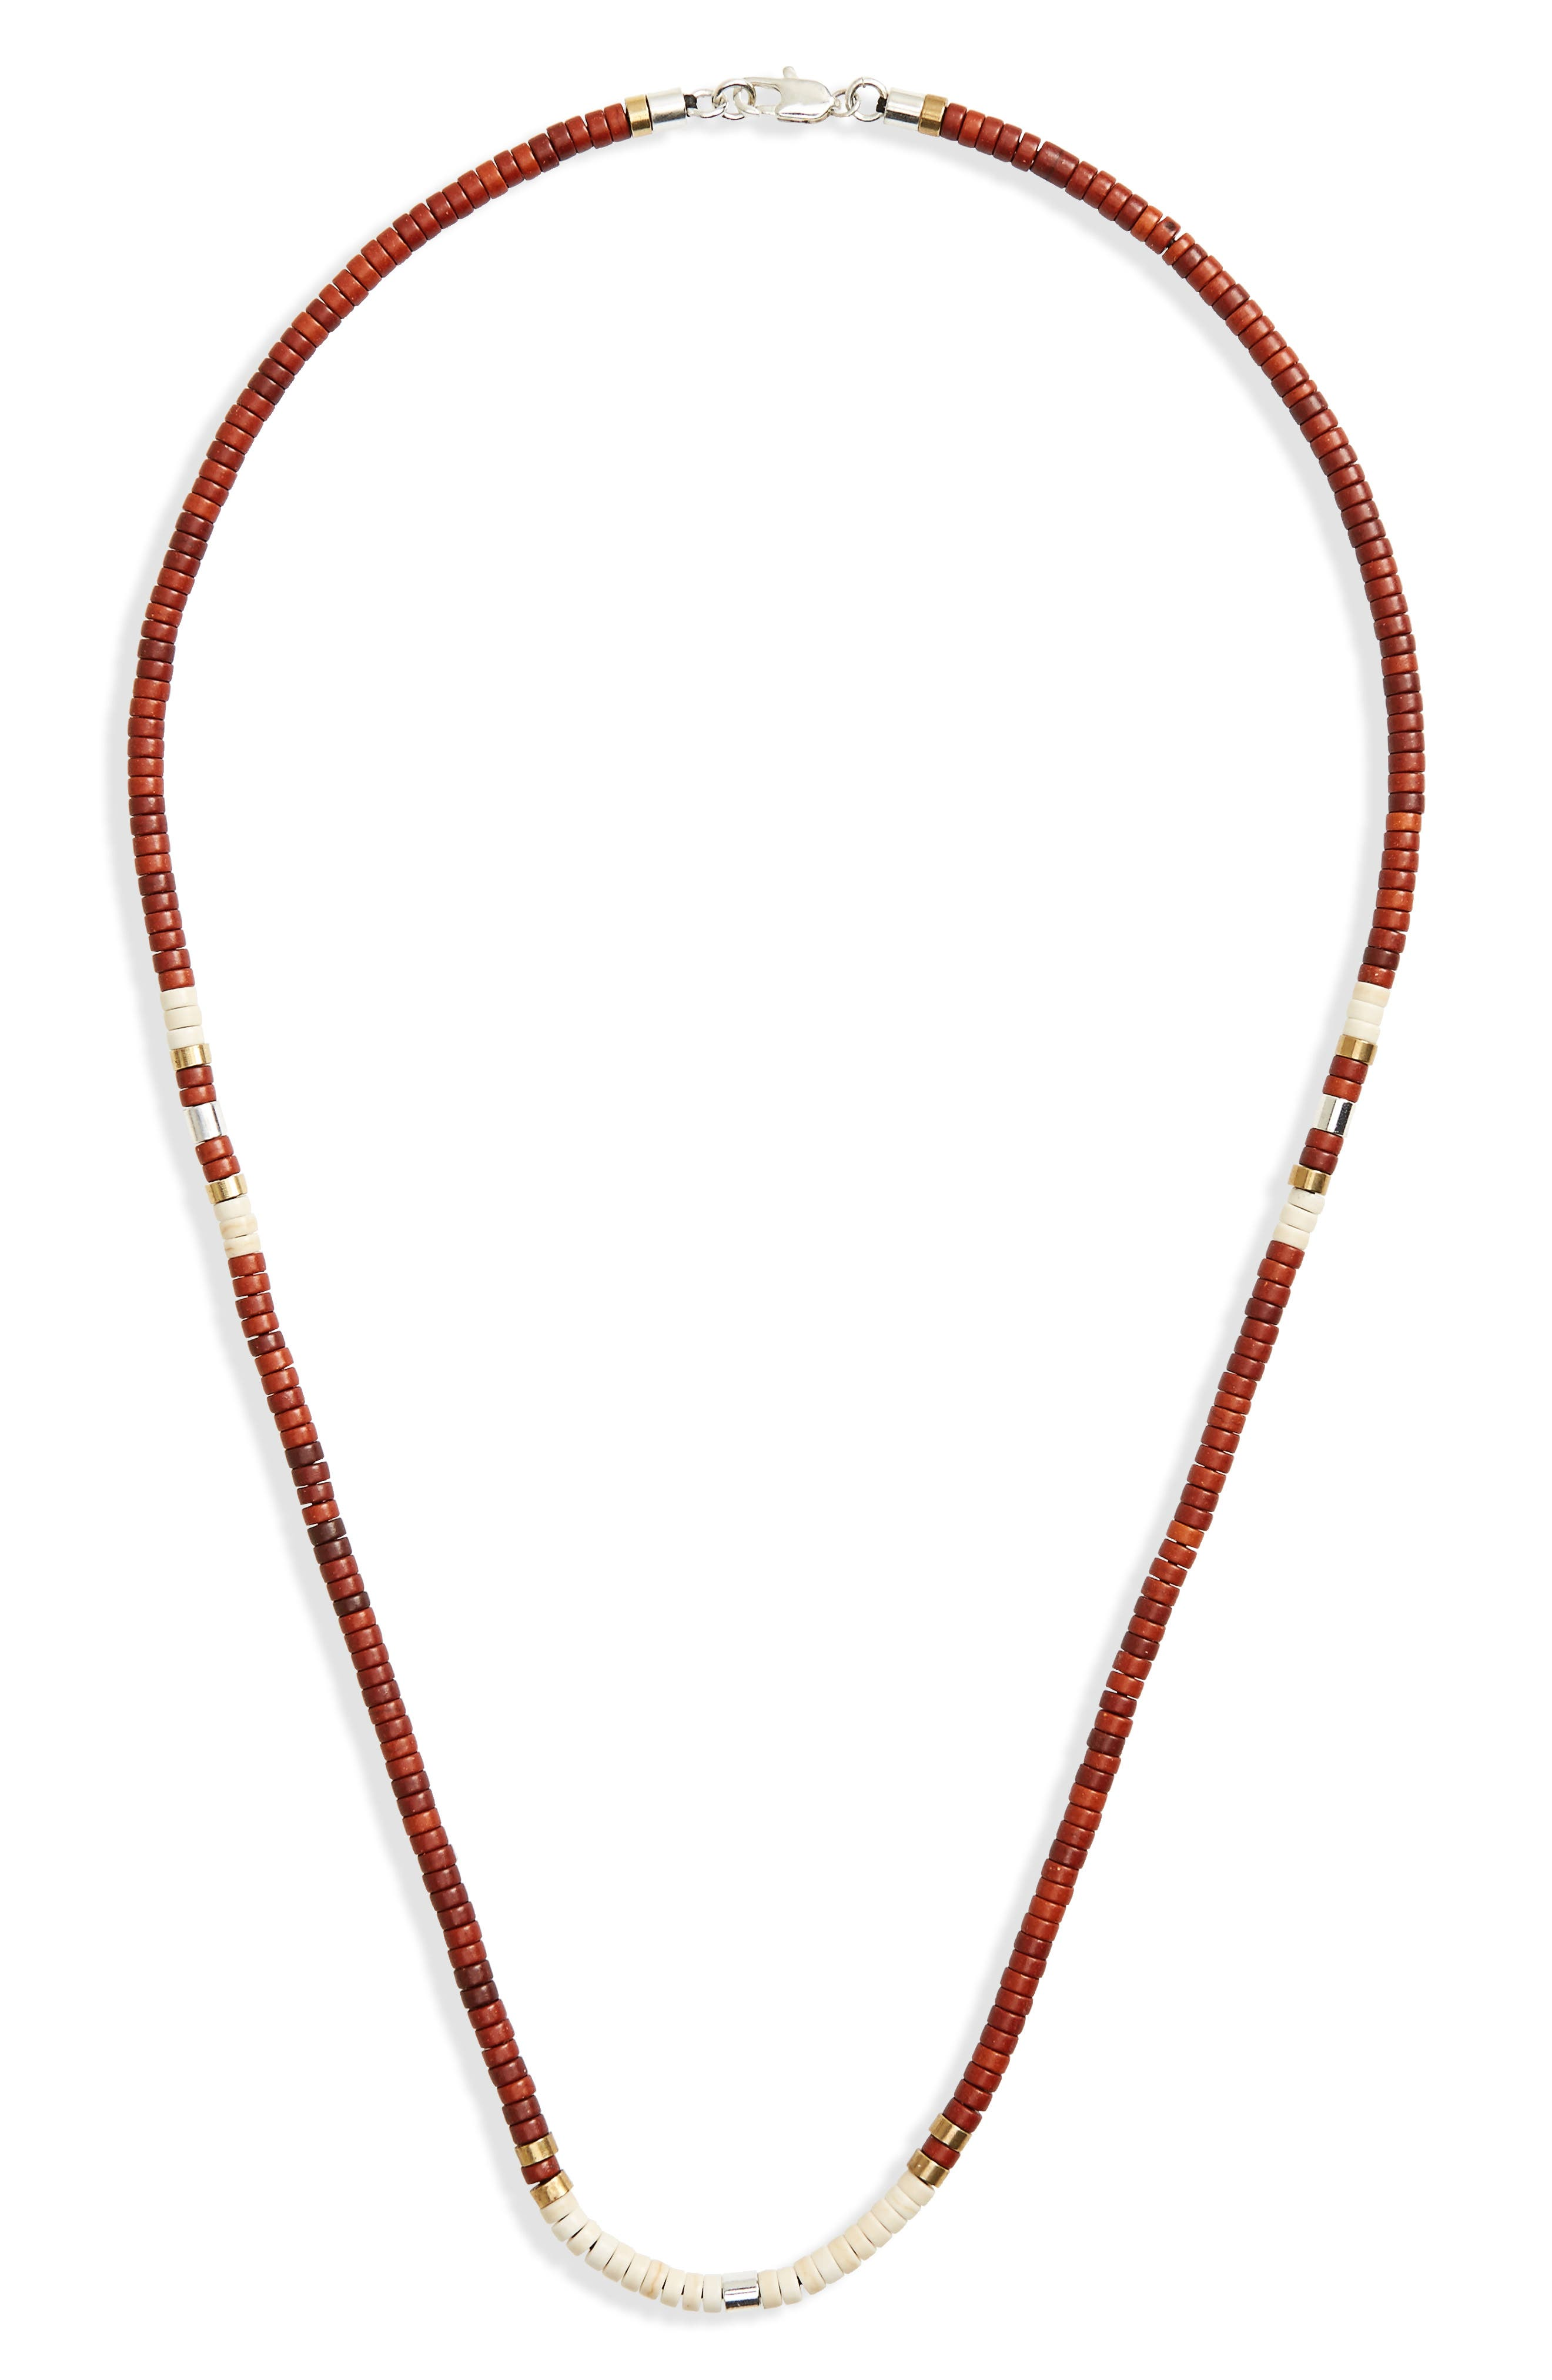 Disc Turquoise Bead Necklace,                             Main thumbnail 1, color,                             Red